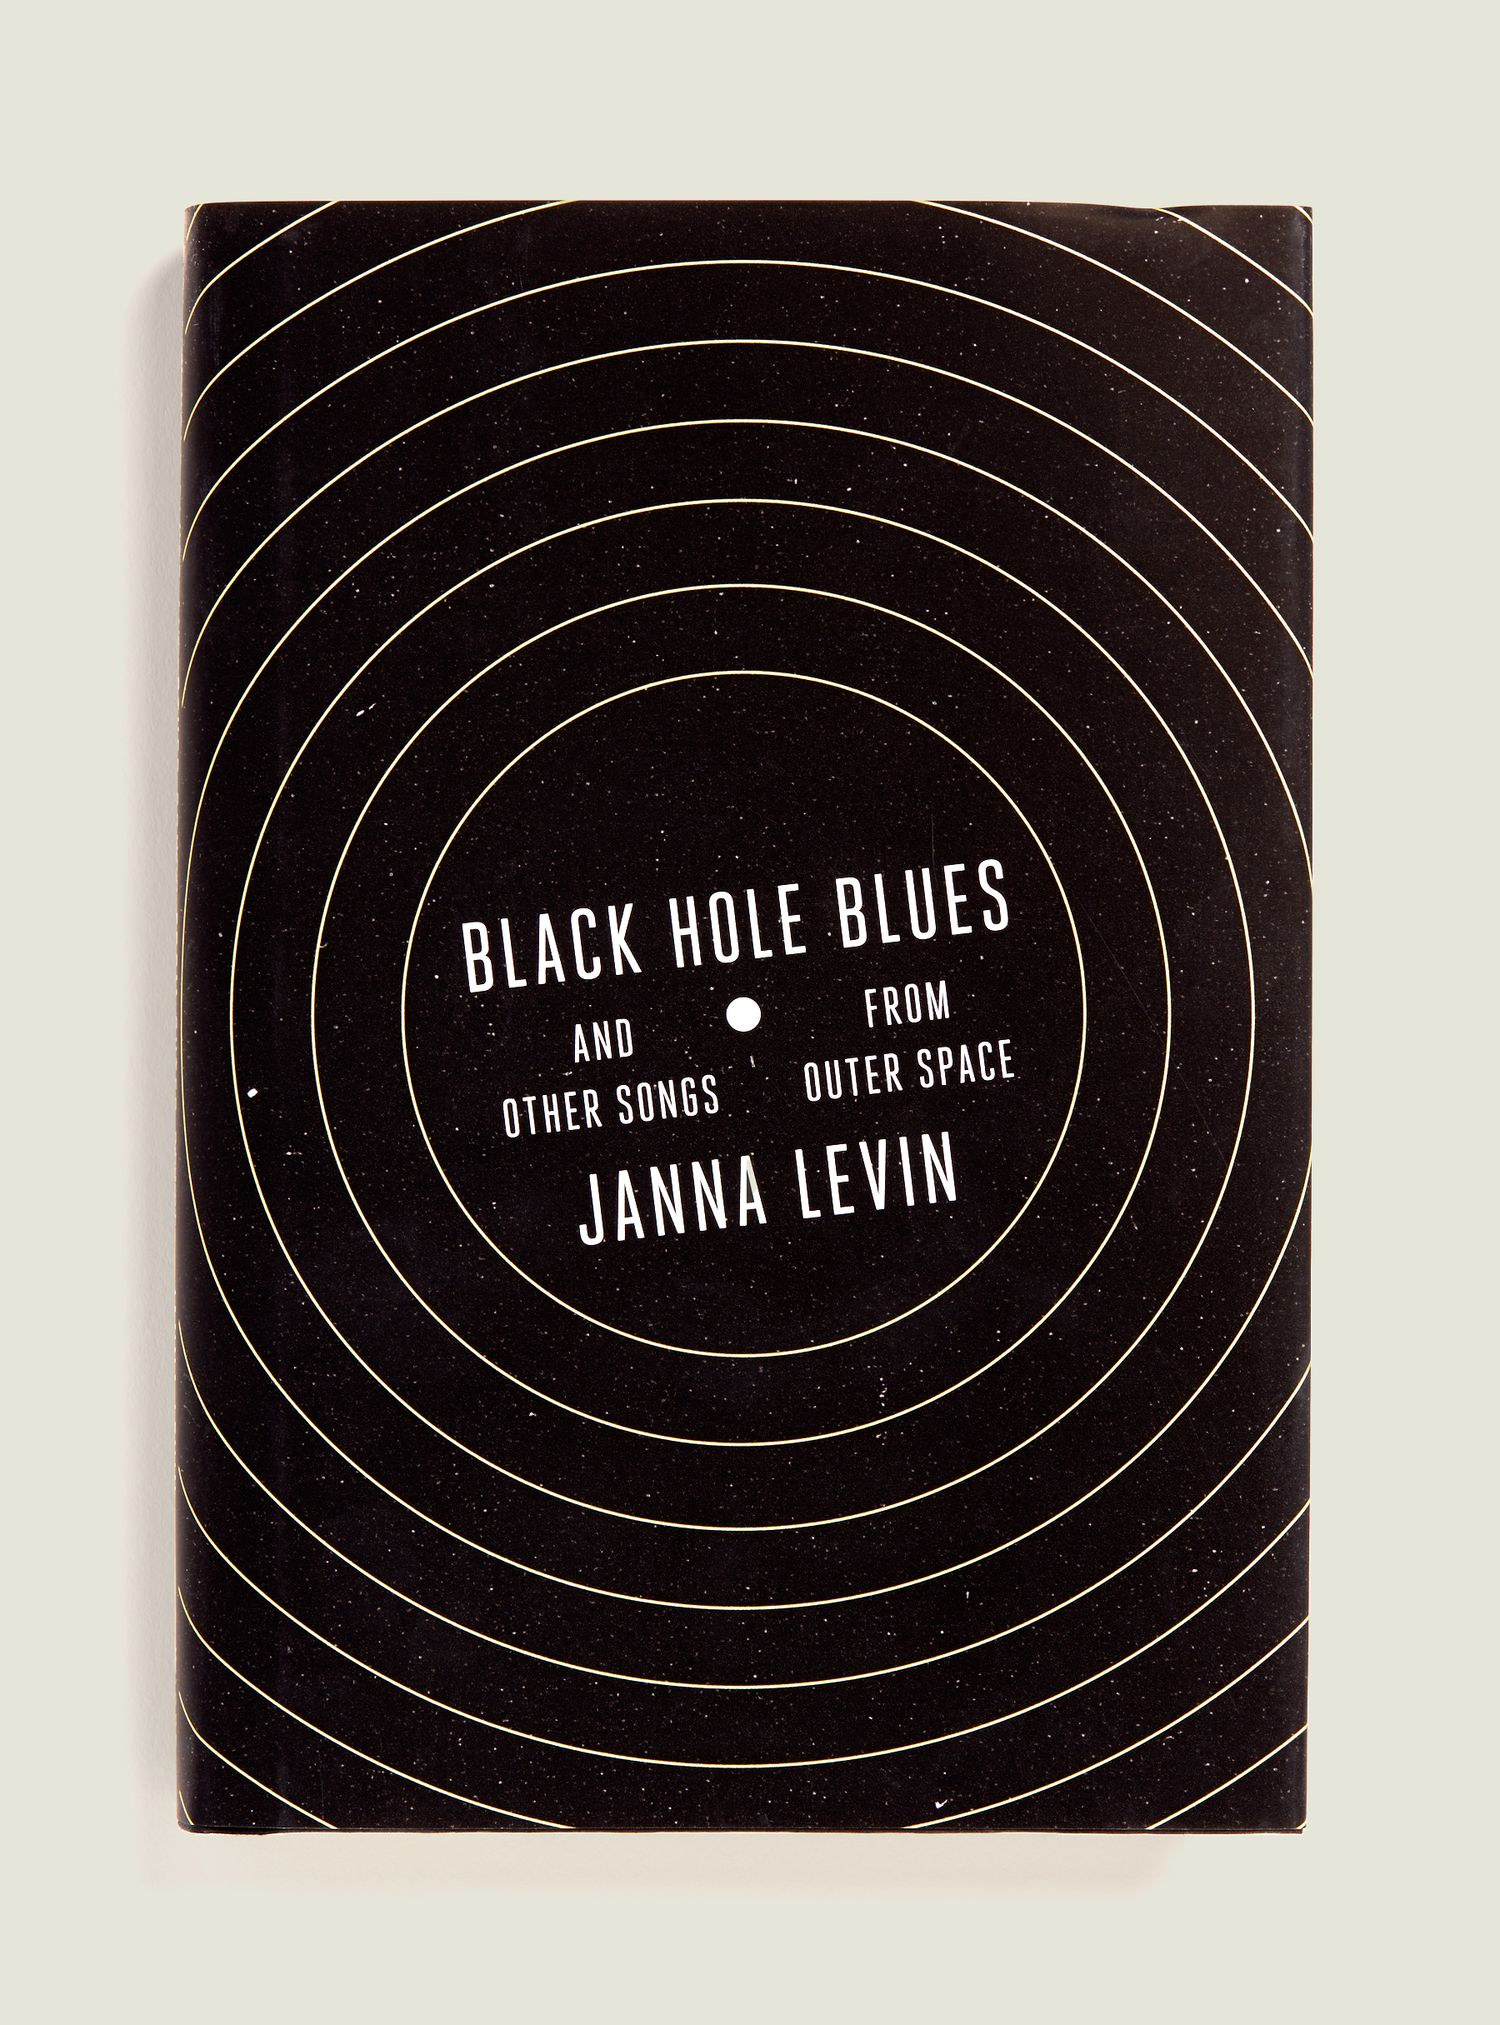 Black Hole Blues, book cover design by Janet Hansen